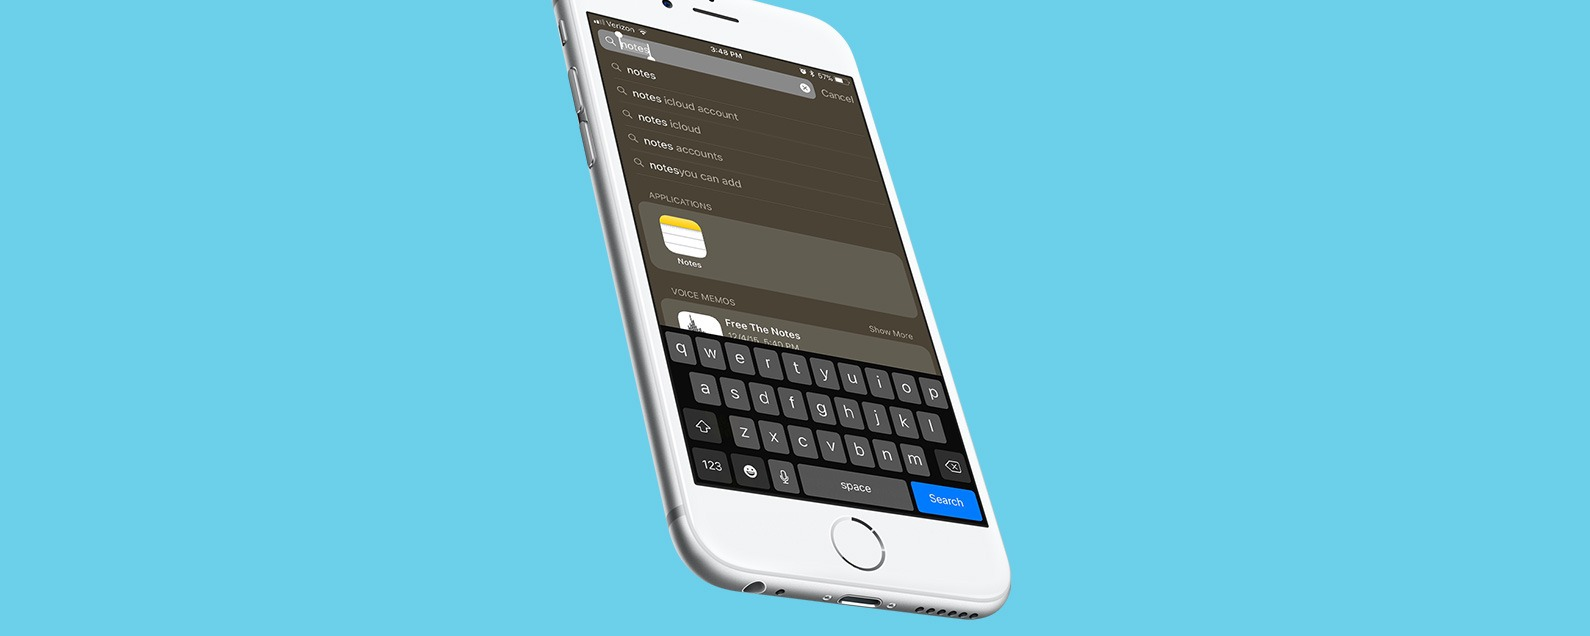 How to Find Hidden or Missing Apps on iPhone | iPhoneLife com